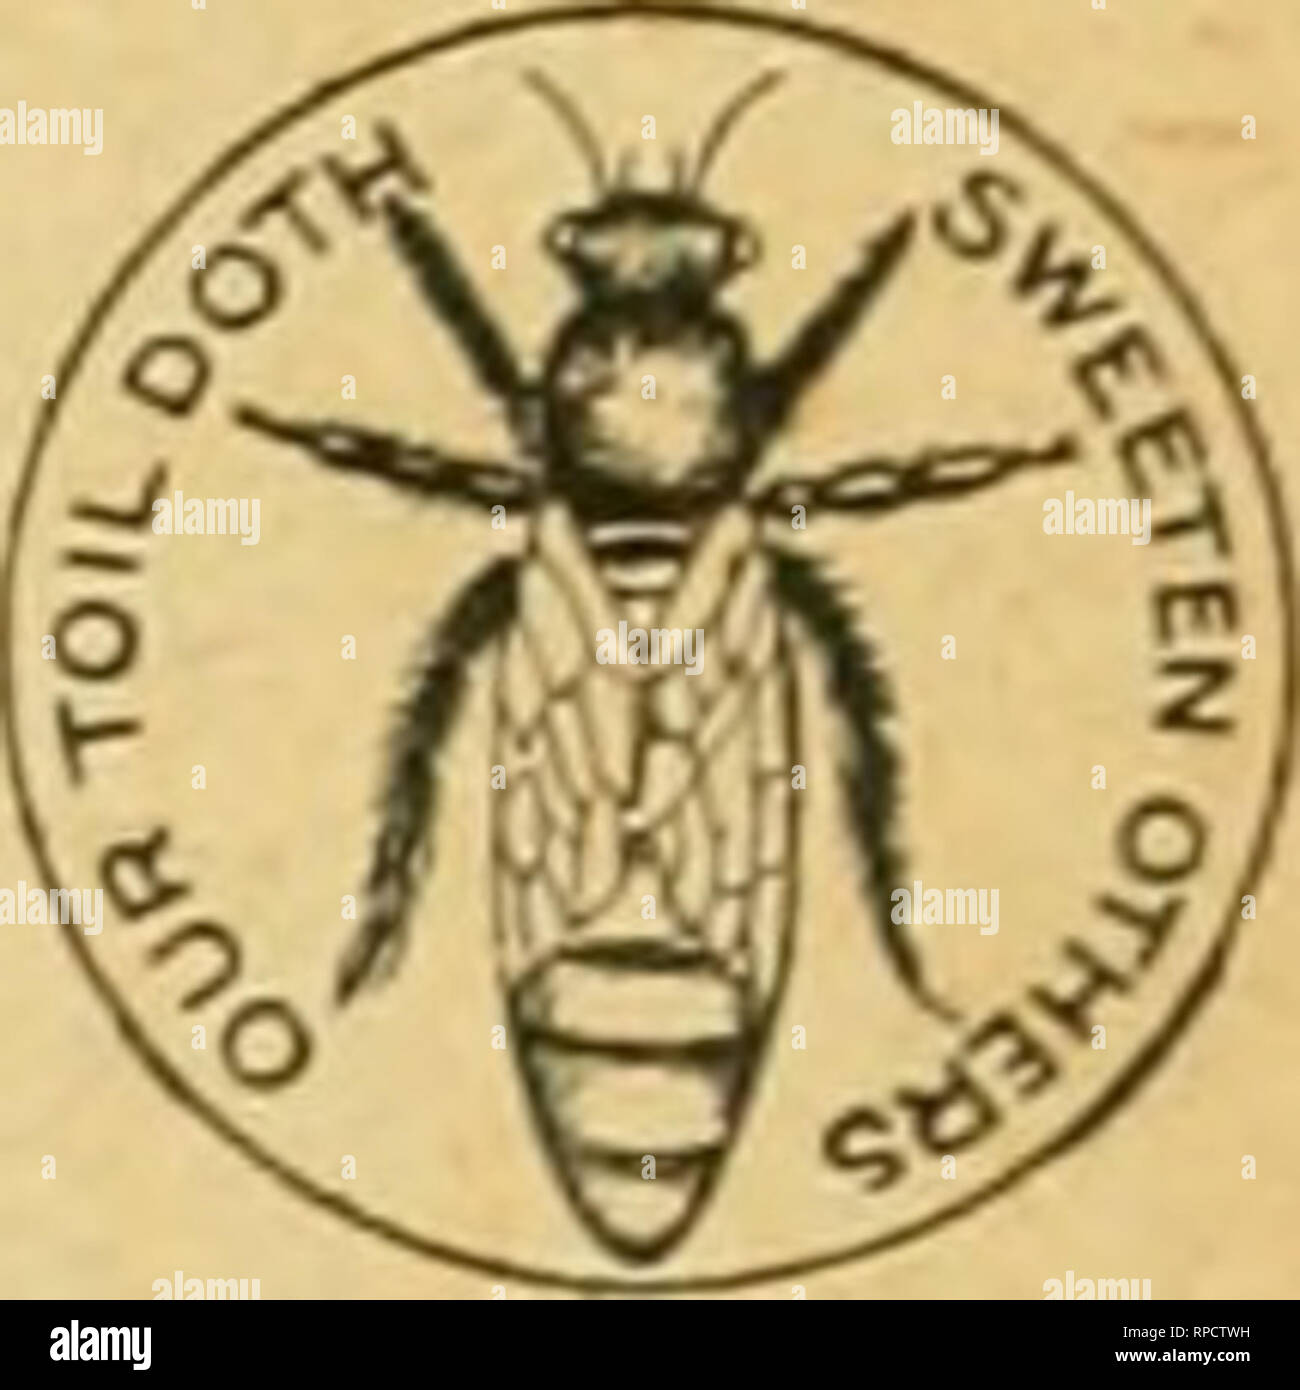 . American bee journal. Bee culture; Bees. QUEENS! Untested Oueens, Italian, 60 cents. Tested, $1.00. From honey-gathering stock. We keep in stock a full line of popular Apiarian Supplies. Catalog free. Apiaries-Glen Cove, I..!. J, J, STRINGHAM, 105 PaPK Pte, NCf M, N, Y. Please mention Bee Journal ?when ?writing A HANDY TOOL-HOIiDEB! Sent by Express, for $1.50 ; or with the Bee Journal one year—both for $2.00. Every Manufacturer. Miller. Carpenter. Cabinet Maker. Machinist. Wheelwright and Quarryman, Farmer, or any one using- a grind- stone, should have one of these Tool-Holders. One boy can  - Stock Image